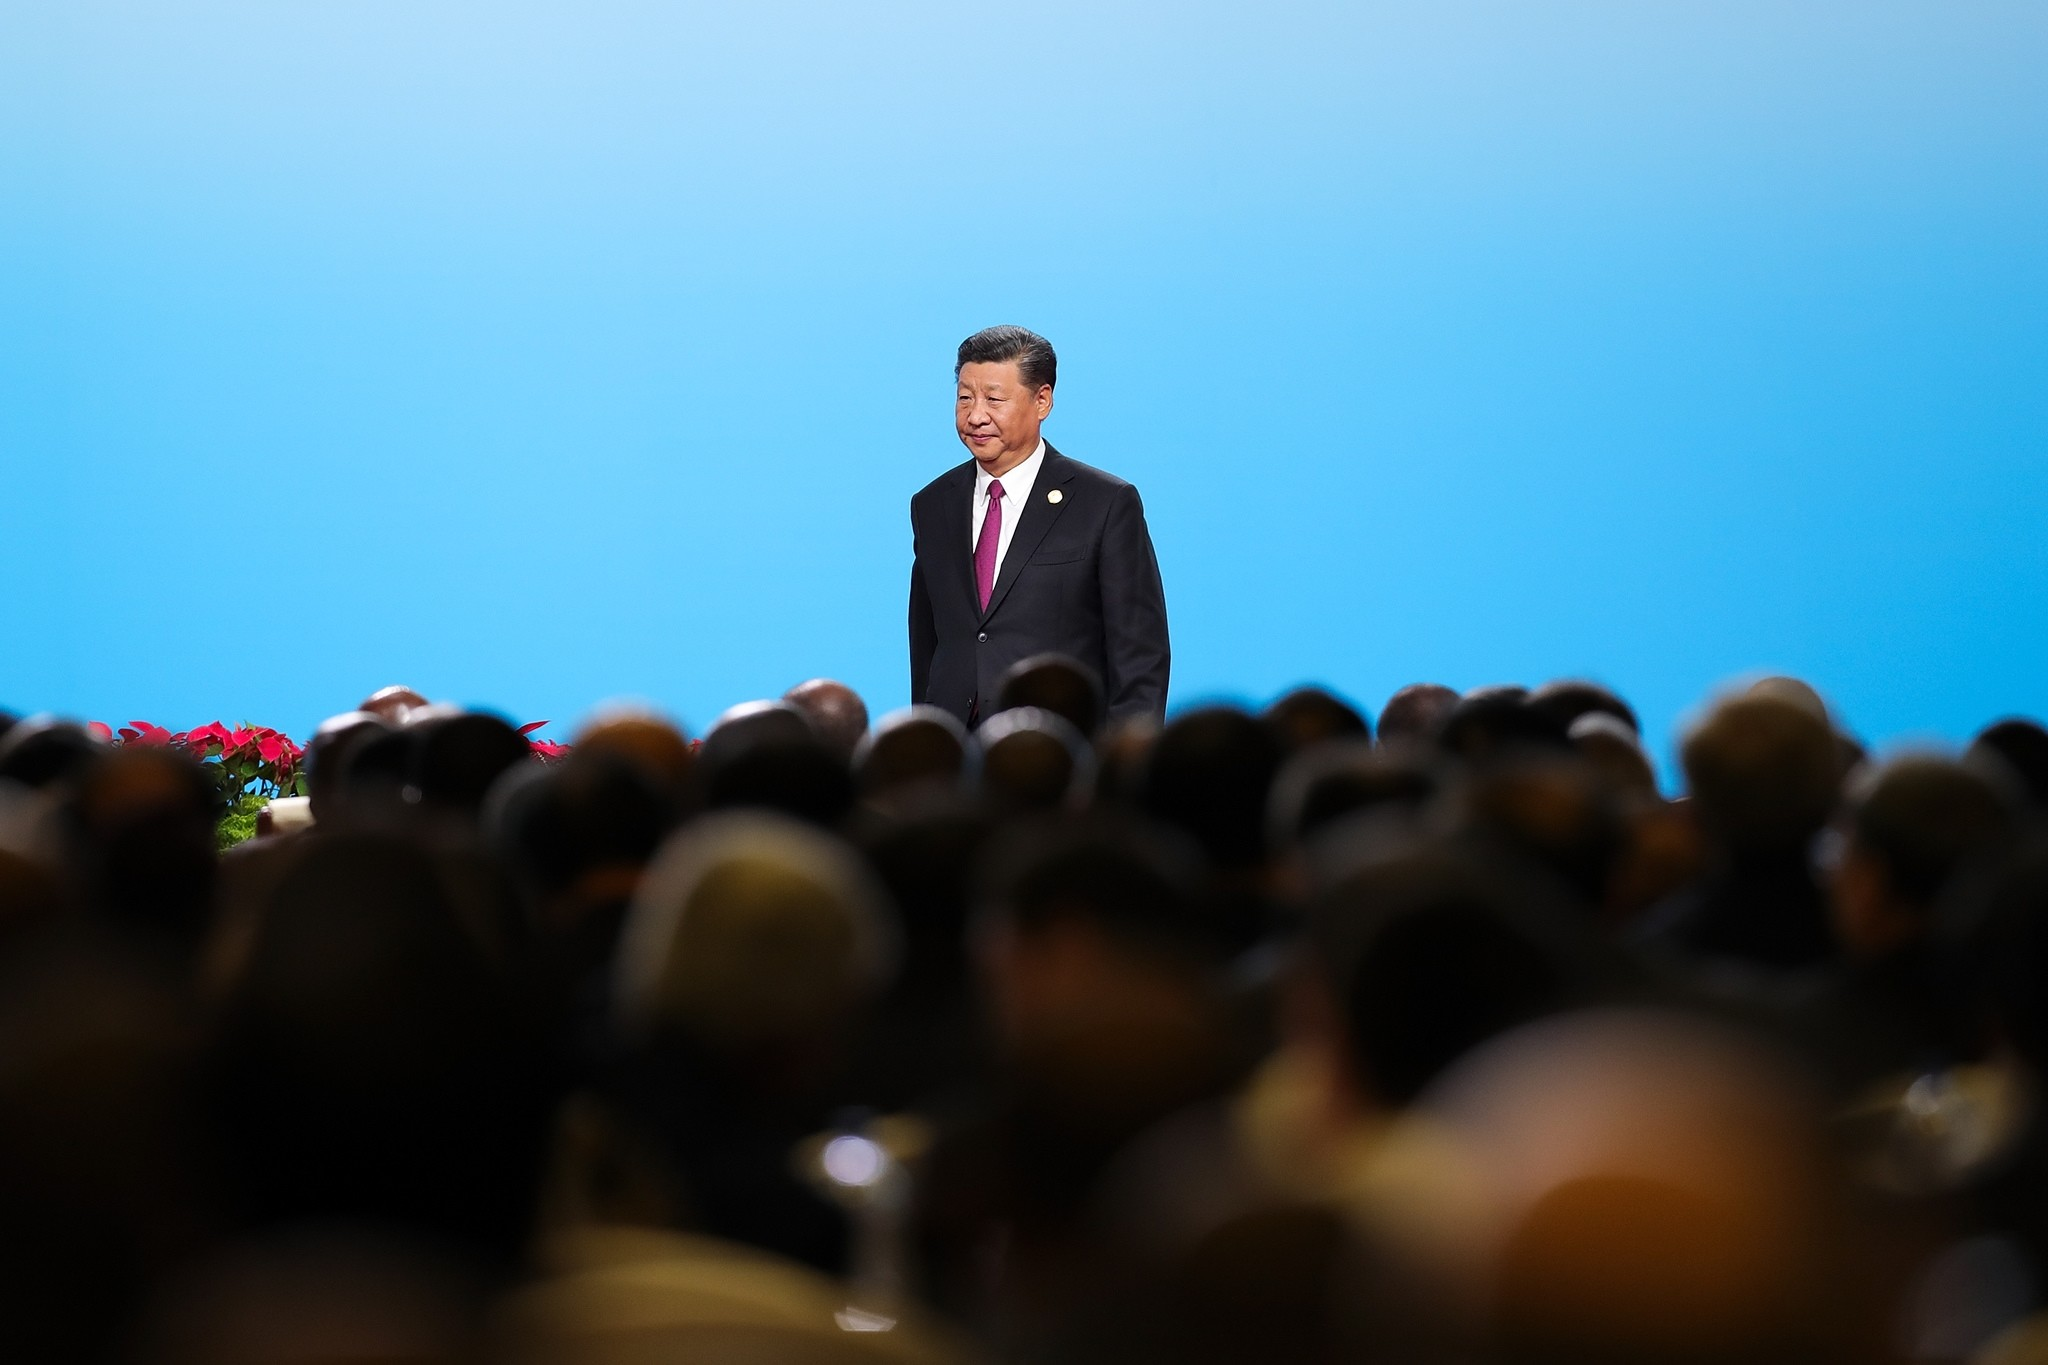 China's President Xi Jinping attends opening ceremony of dialogue between Chinese and African leaders and business representatives ahead of the 6th Forum of China-Africa Cooperation in Beijing on Sept. 3, 2018. (AFP Photo)